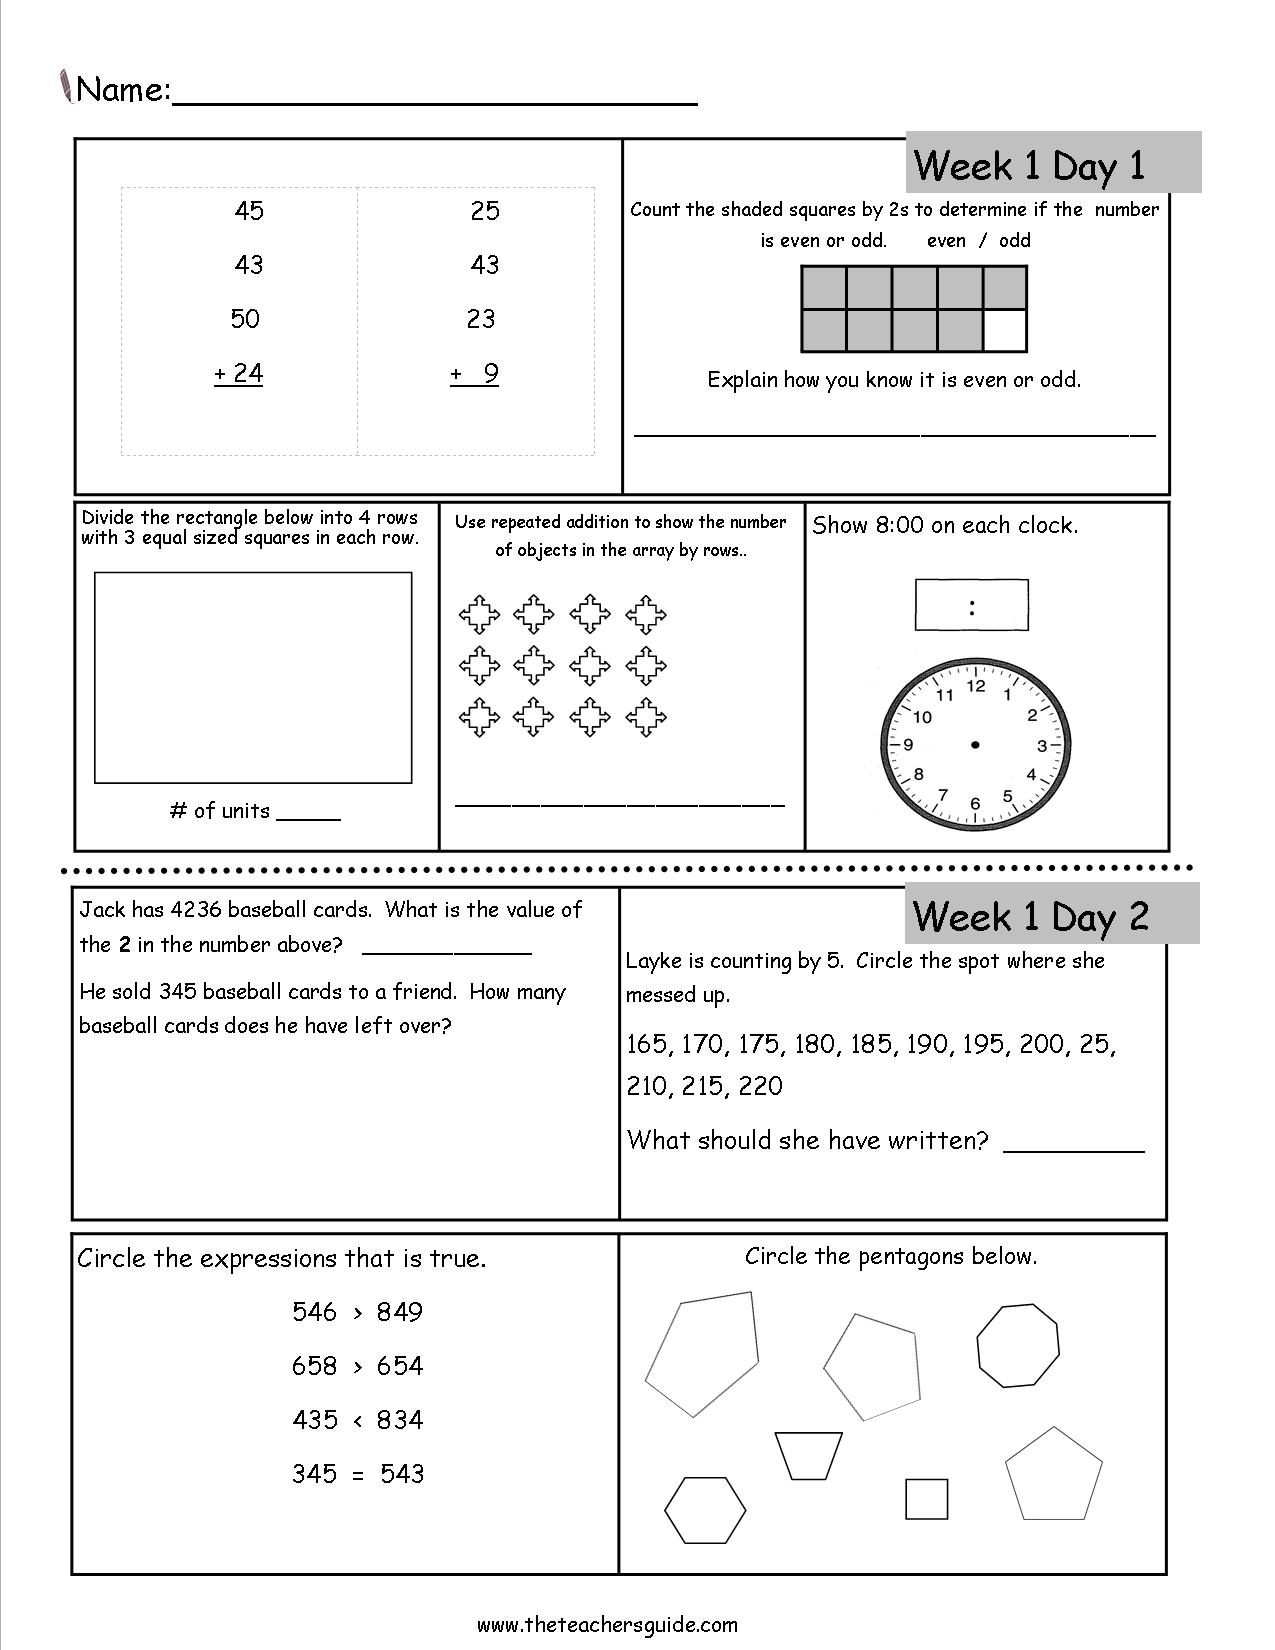 Math Homework For 3rd Graders Third Grade Math Worksheets